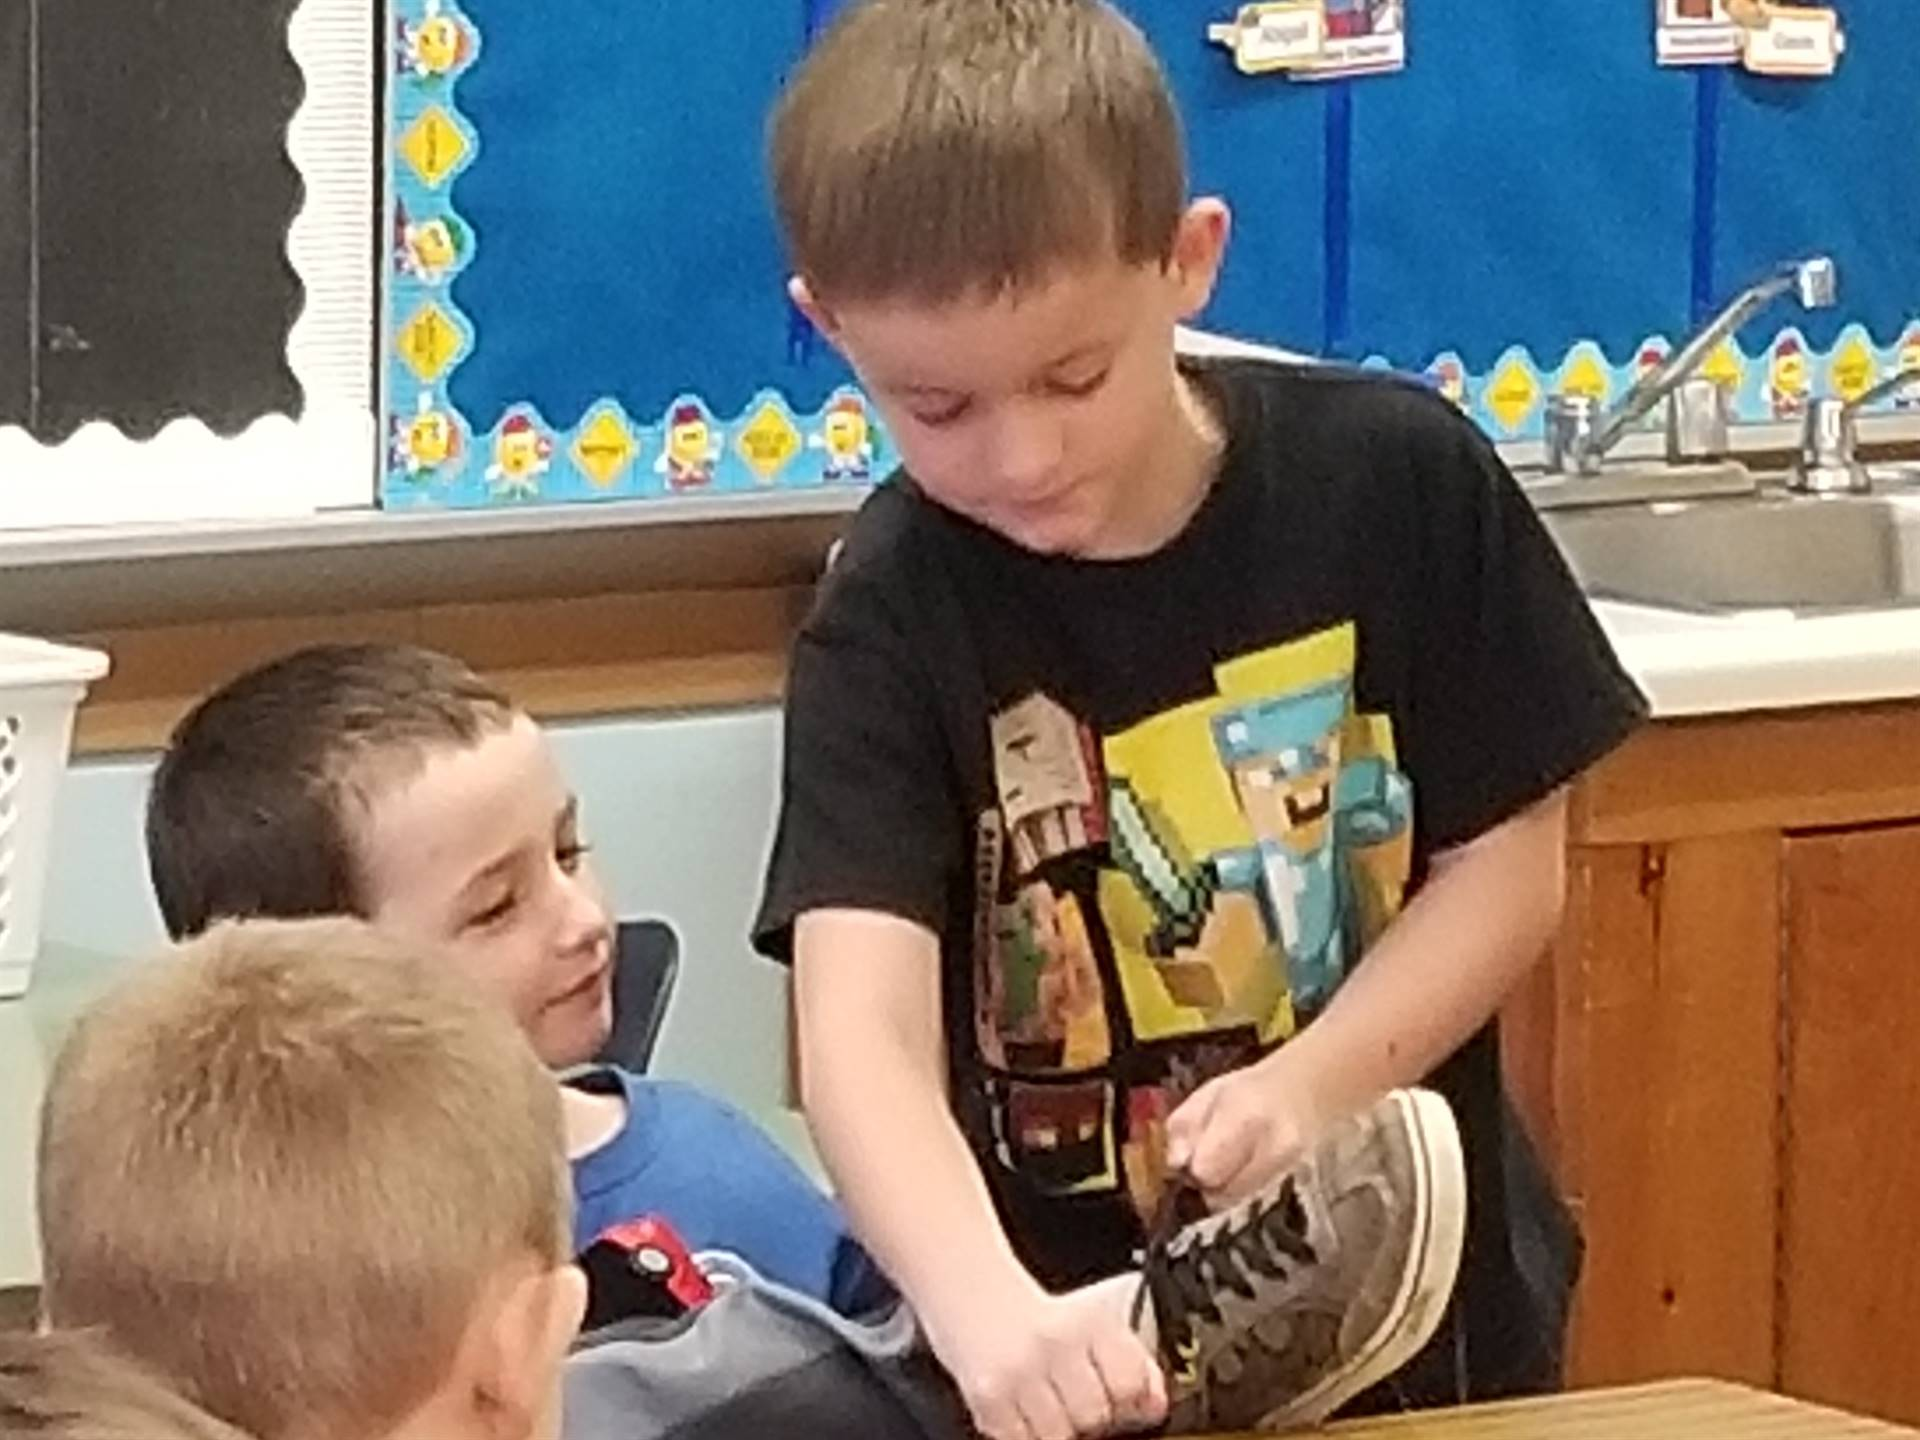 A student uses helping hands to tie another students shoes!